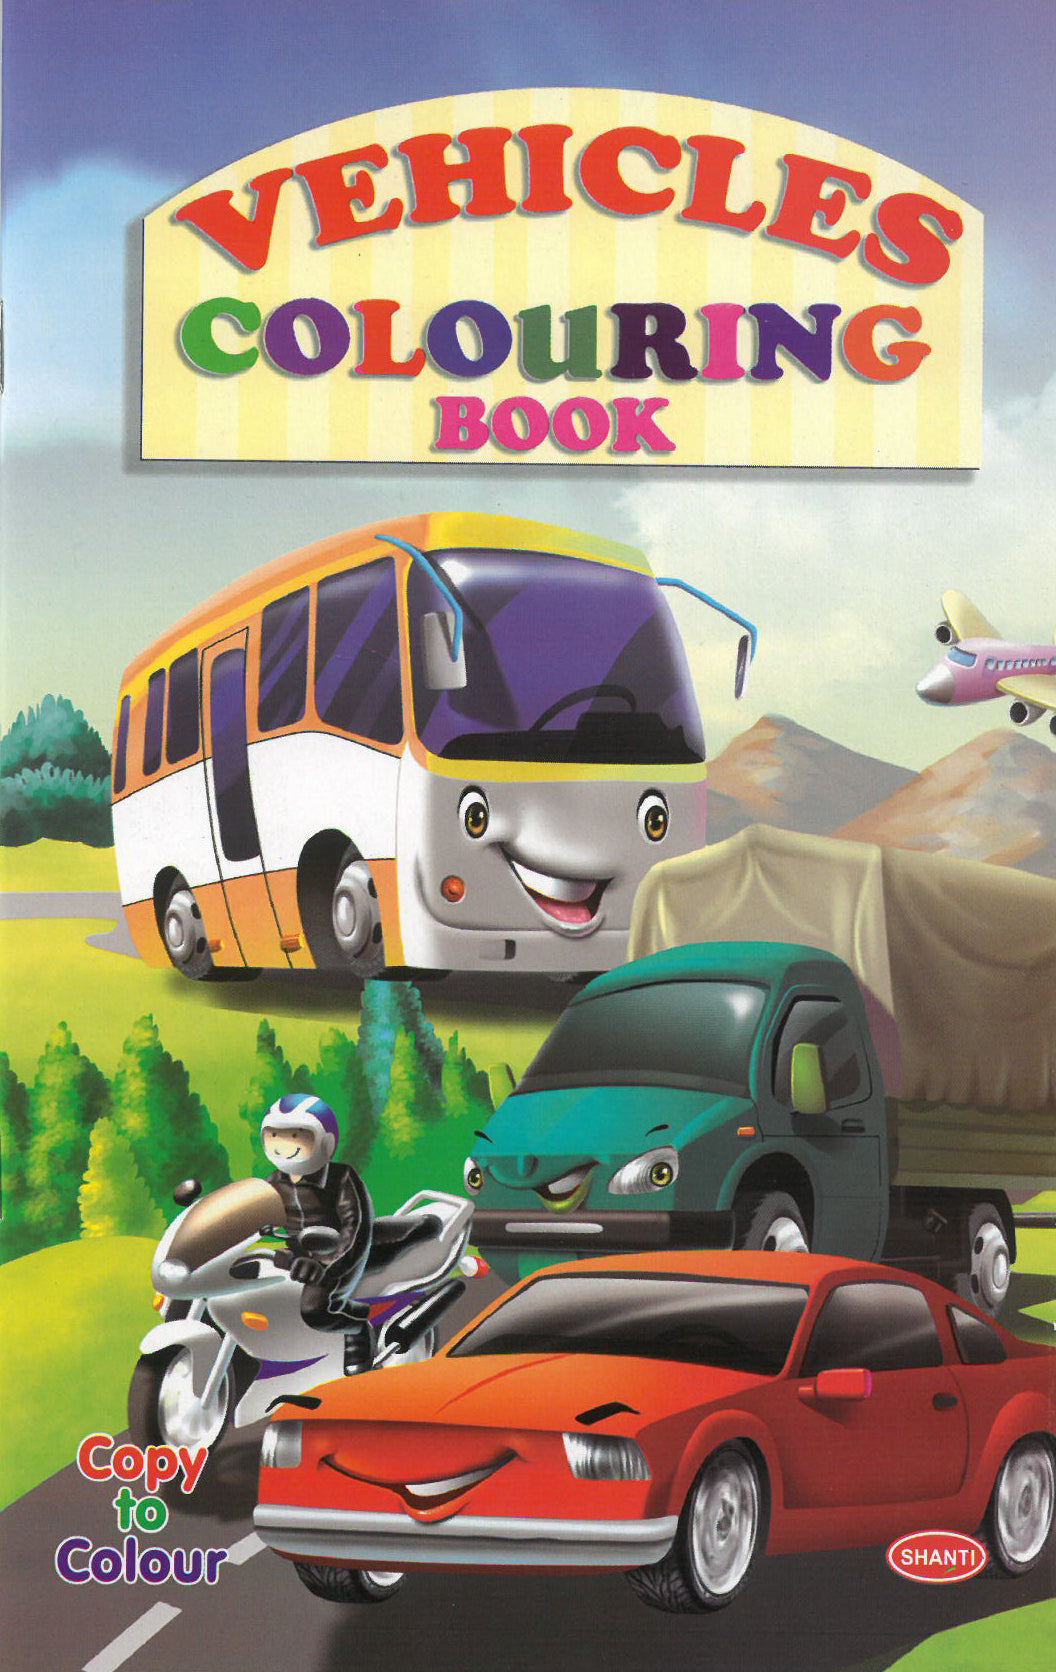 Colouring Books for Kids - Vehicles Colouring Book